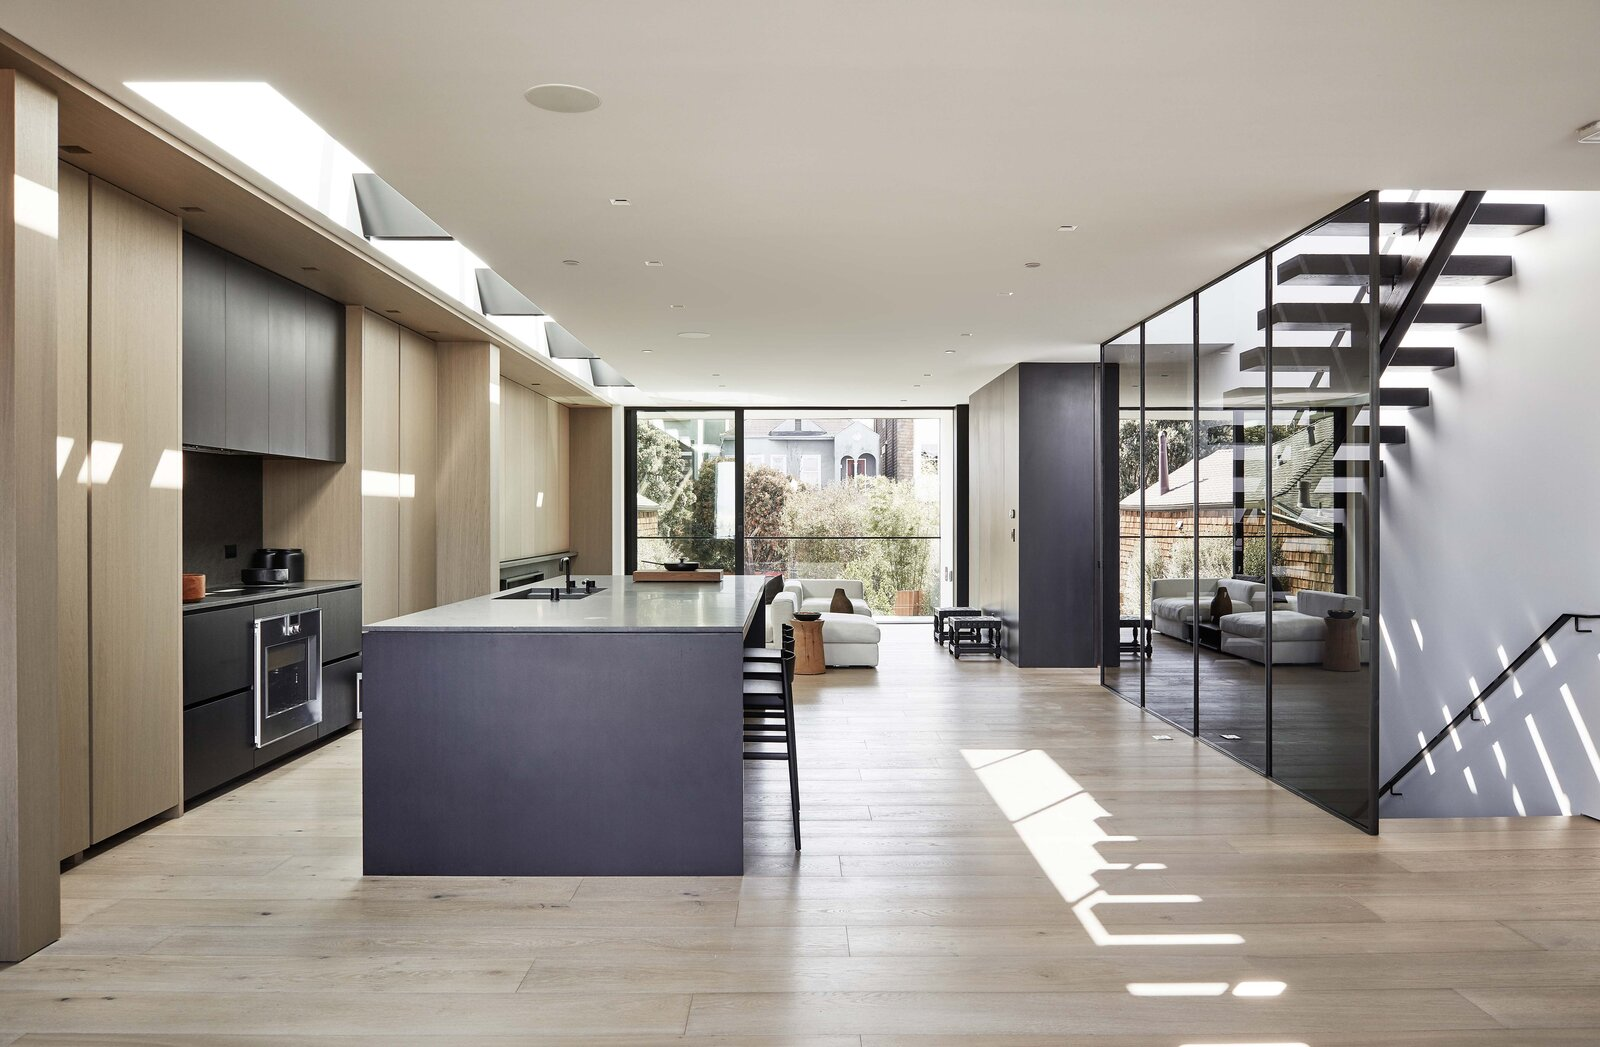 A large island grounds the kitchen in the middle of the space.